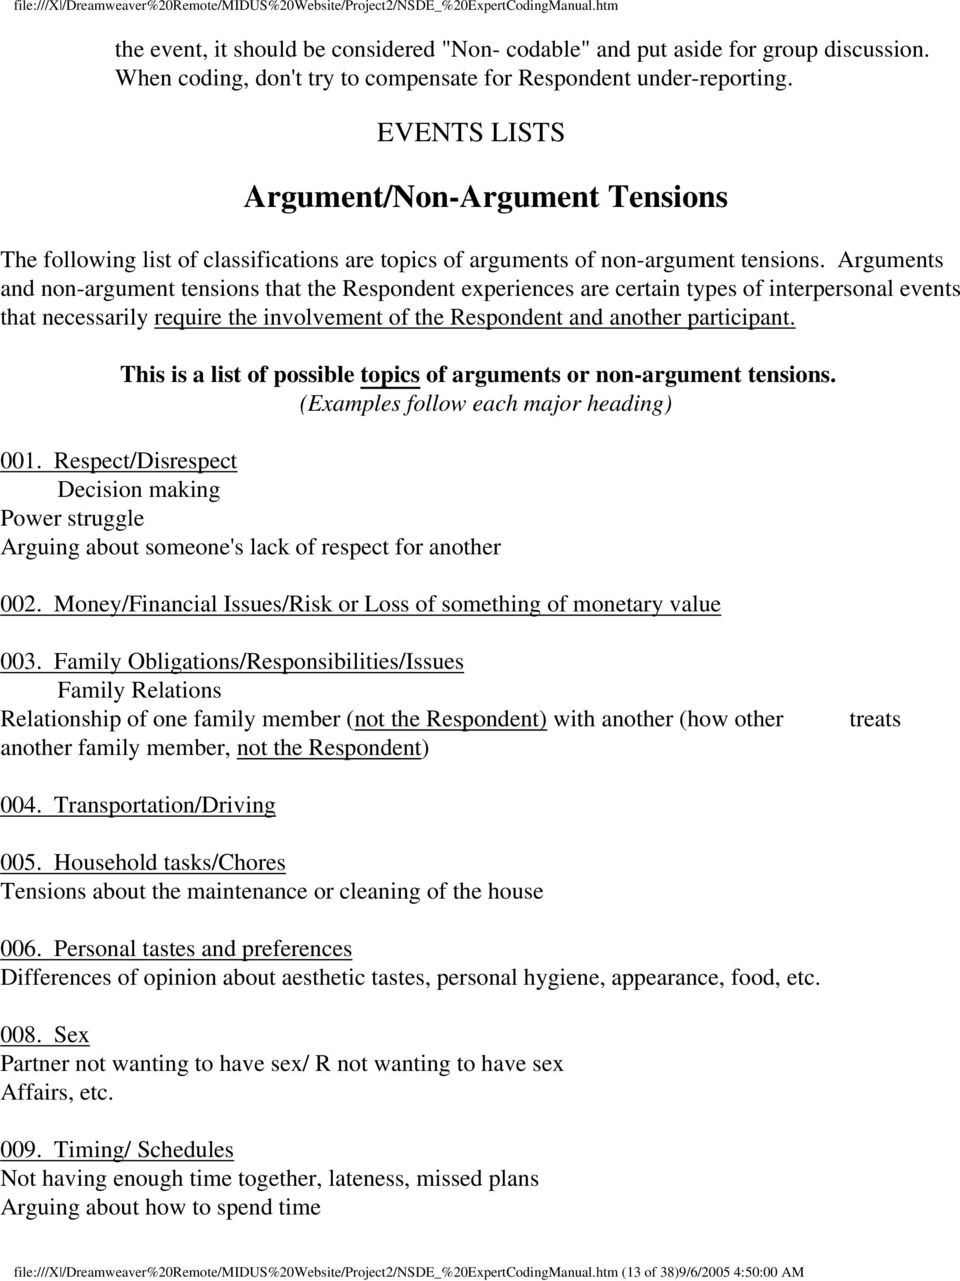 Arguments and non-argument tensions that the Respondent experiences are certain types of interpersonal events that necessarily require the involvement of the Respondent and another participant.